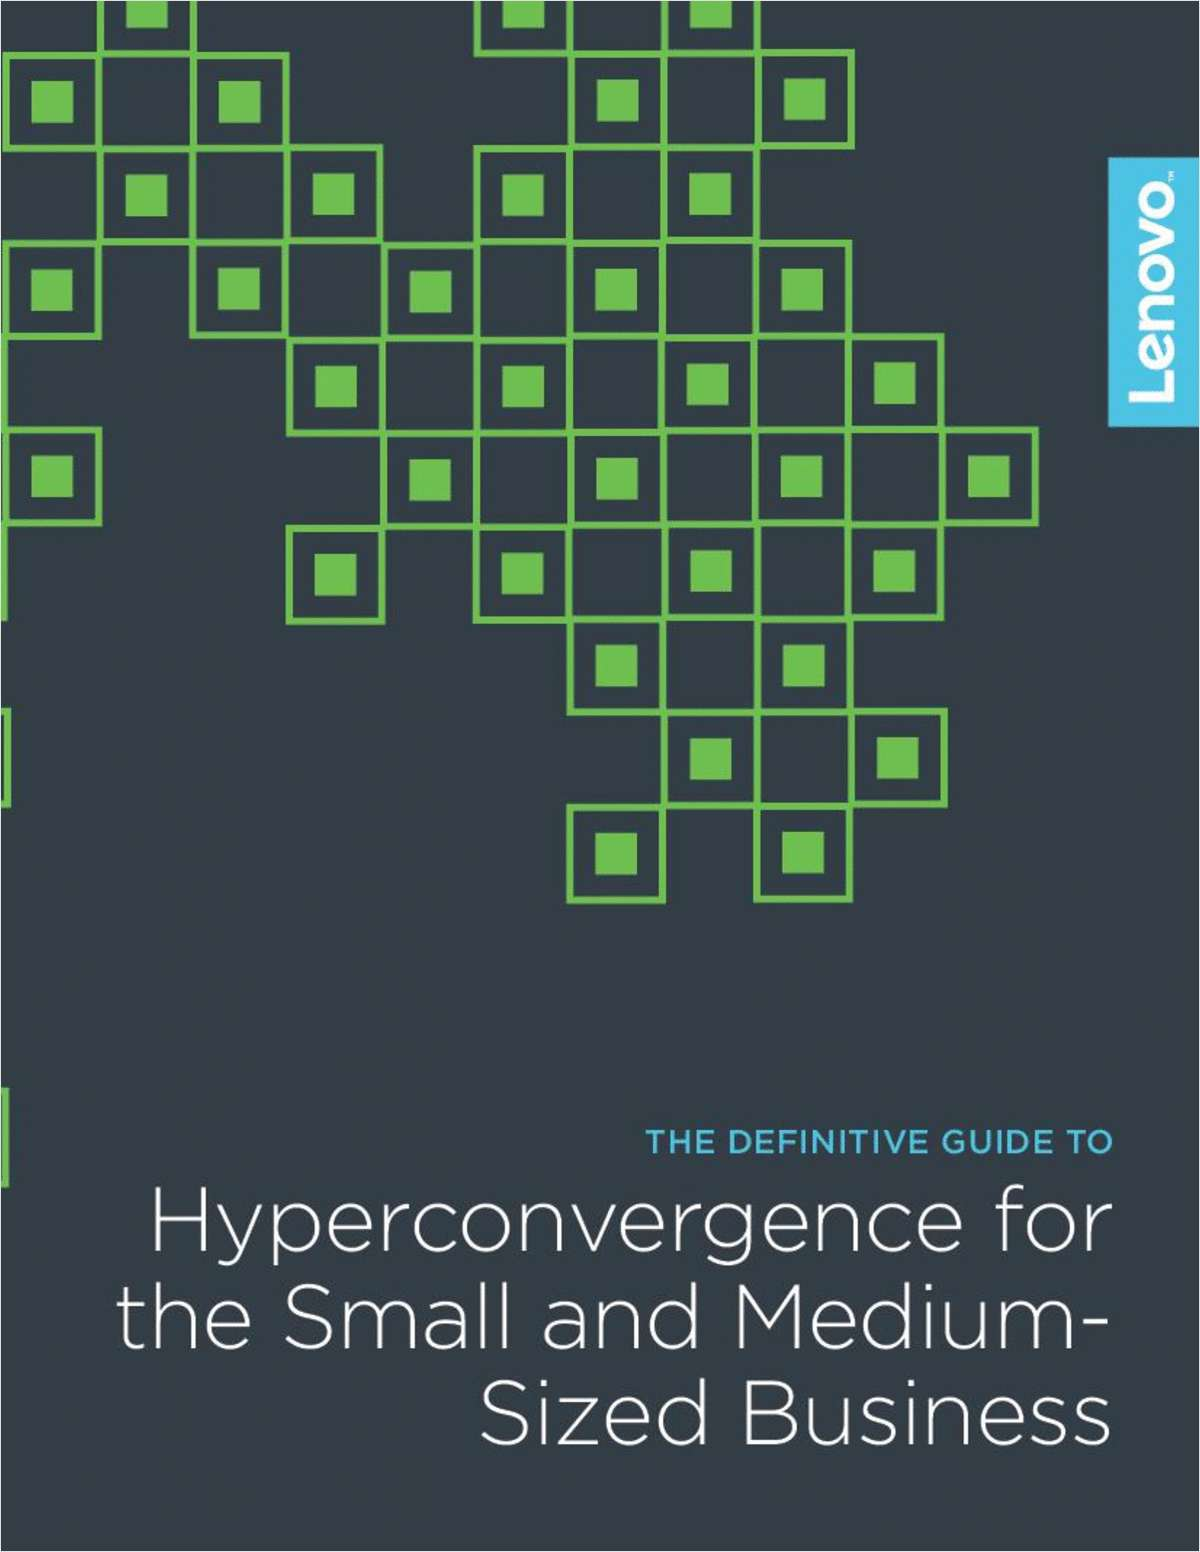 The Definitive Guide to Hyperconvergence for the Small and Medium-Sized Business